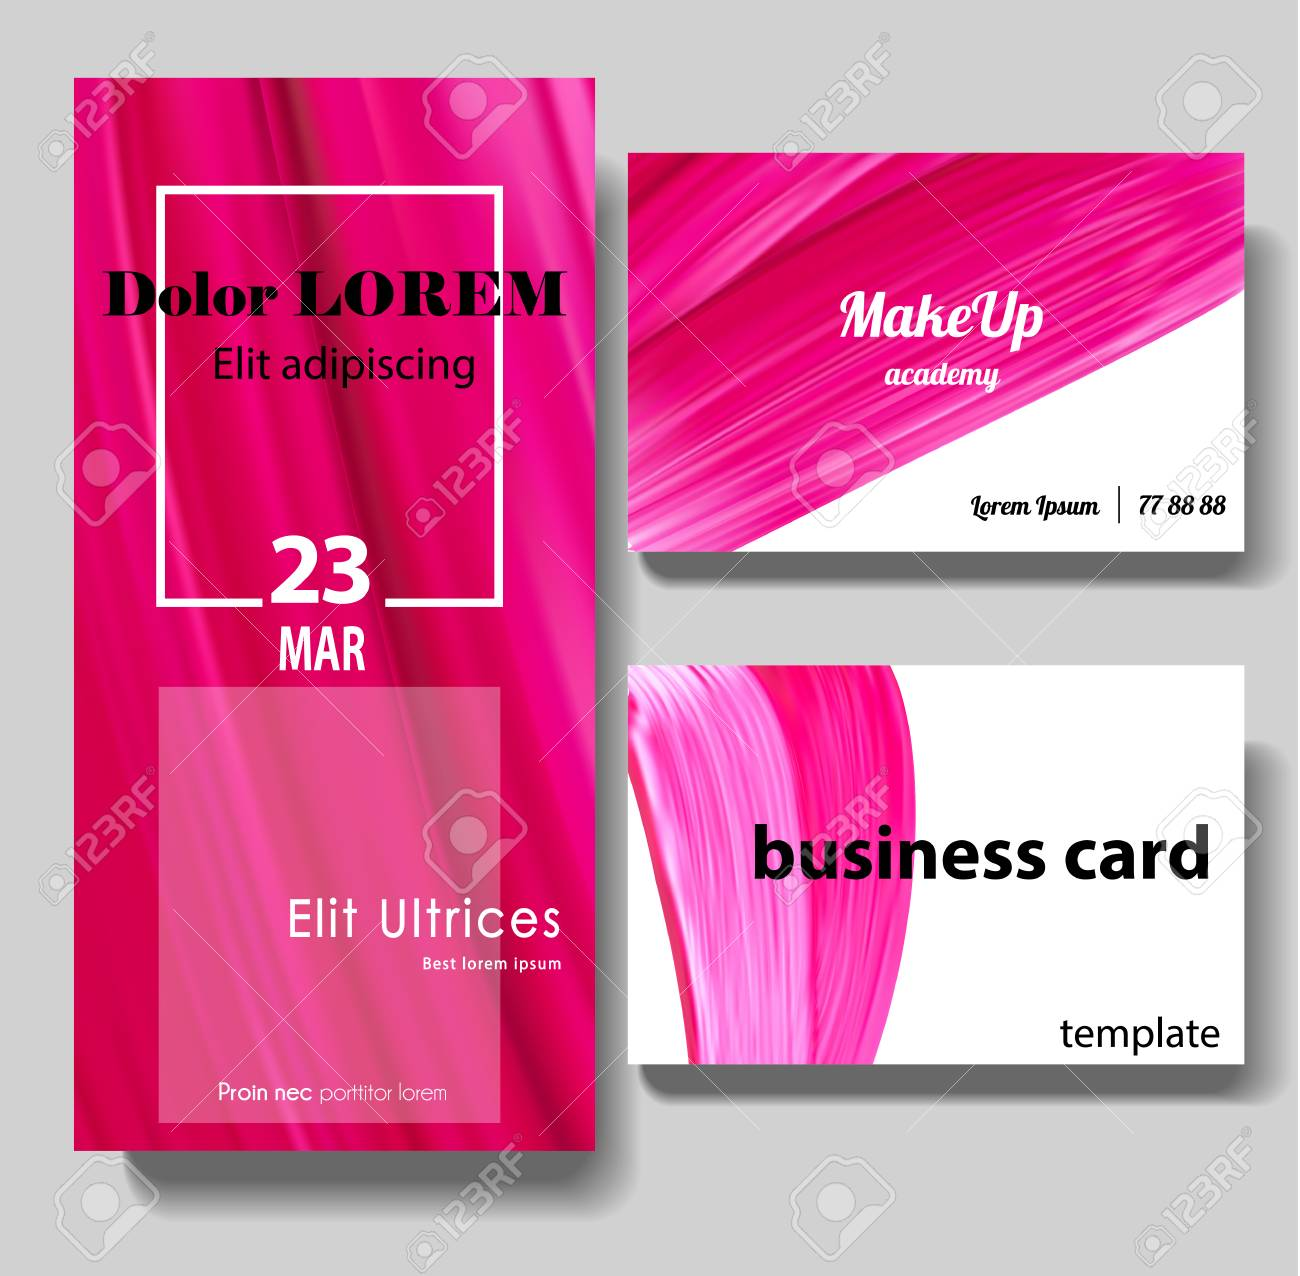 Carte De Visite Maquillage Beaute Flyer Template Pinceau